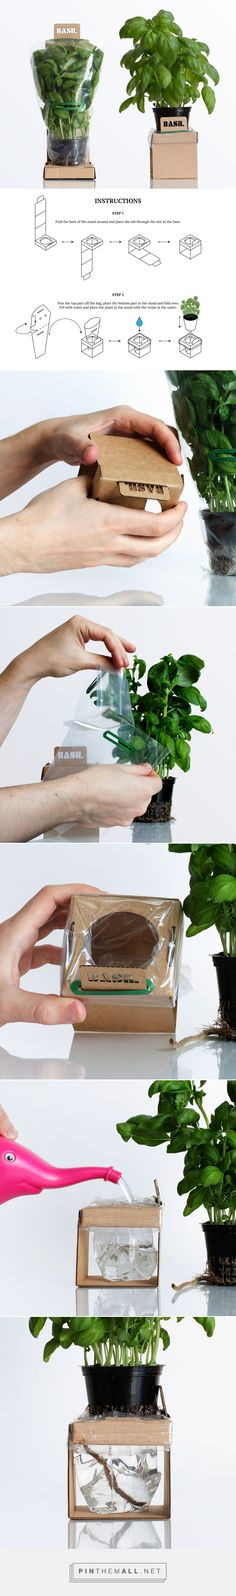 Self-Watering Herbs by Duncan Anderson. Source: Packaging Design Served, work featured on Packaging of the World. Vegetable Packaging, Spices Packaging, Smart Packaging, Seed Packaging, Flower Packaging, Pretty Packaging, Brand Packaging, Self Watering, Packaging Design Inspiration